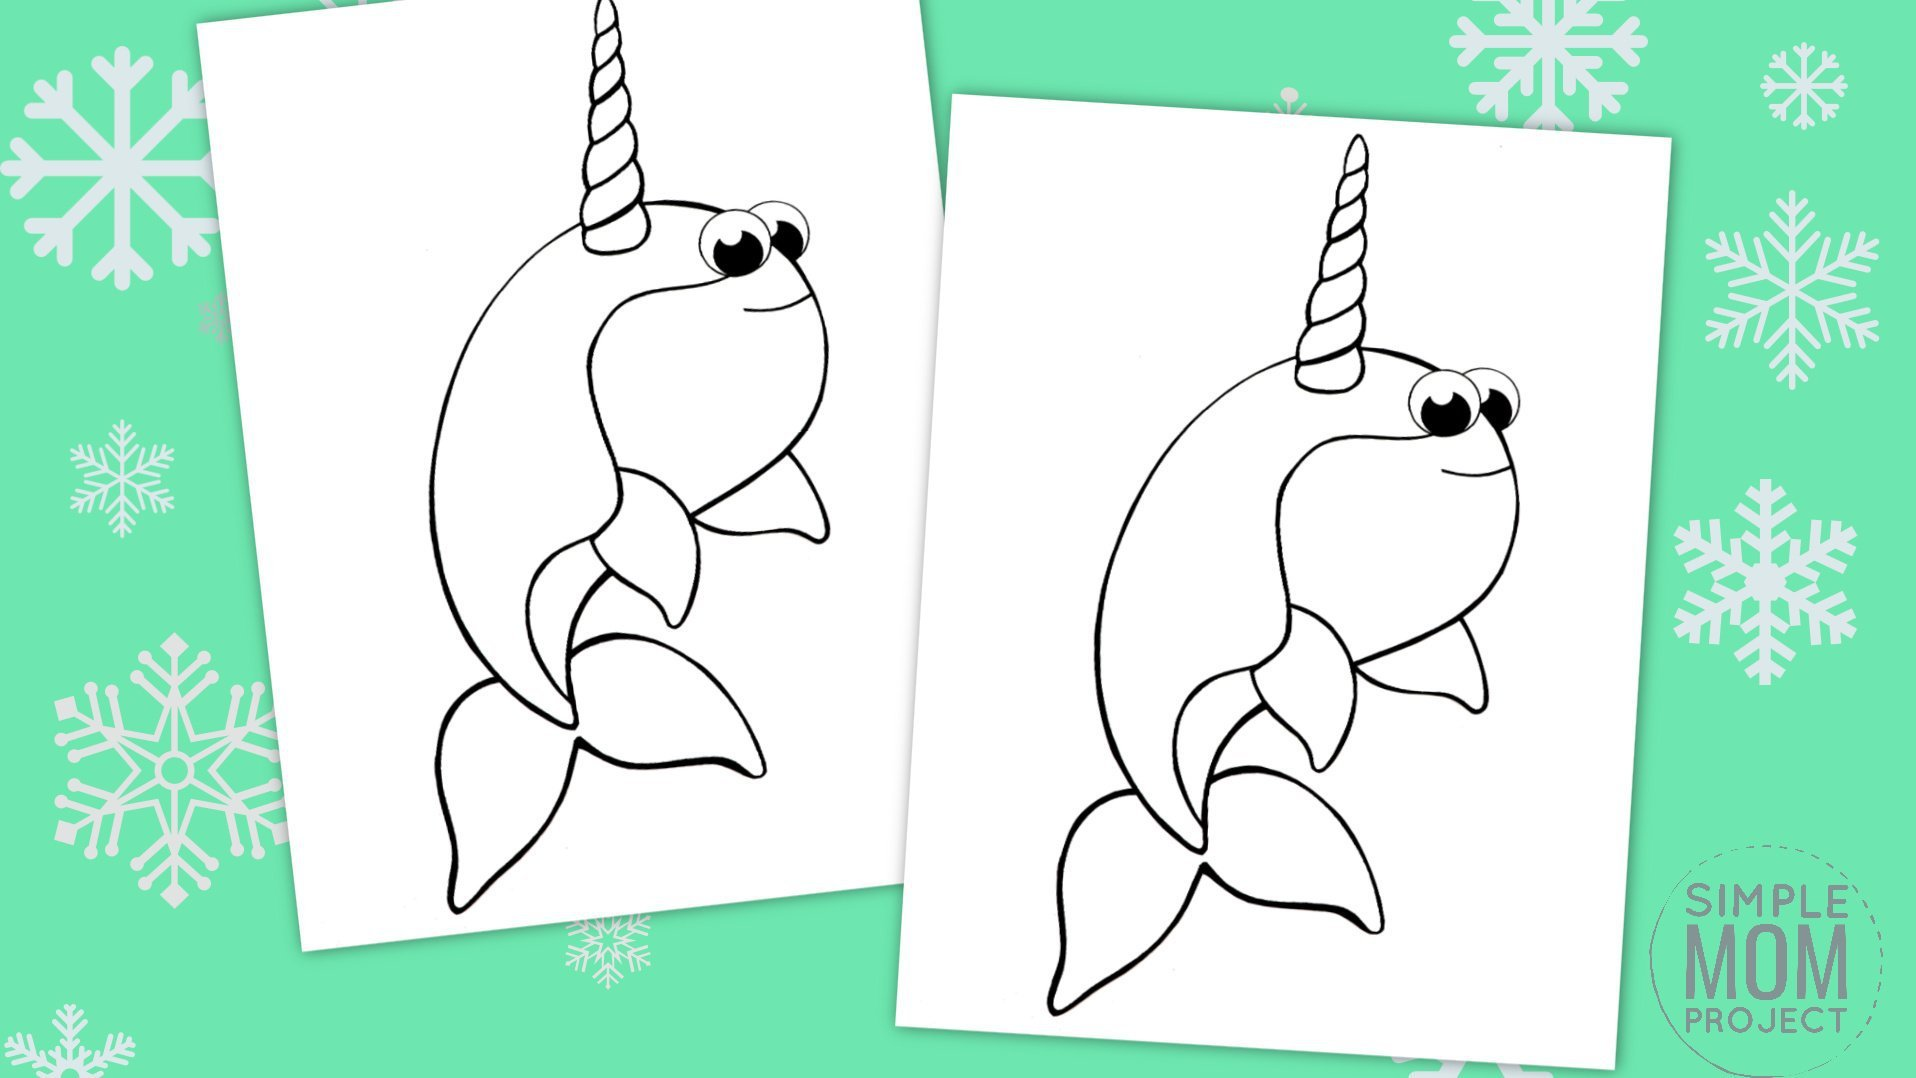 Free Printable Simple Arctic Animal Narwhal Coloring Page for kids preschoolers and toddlers